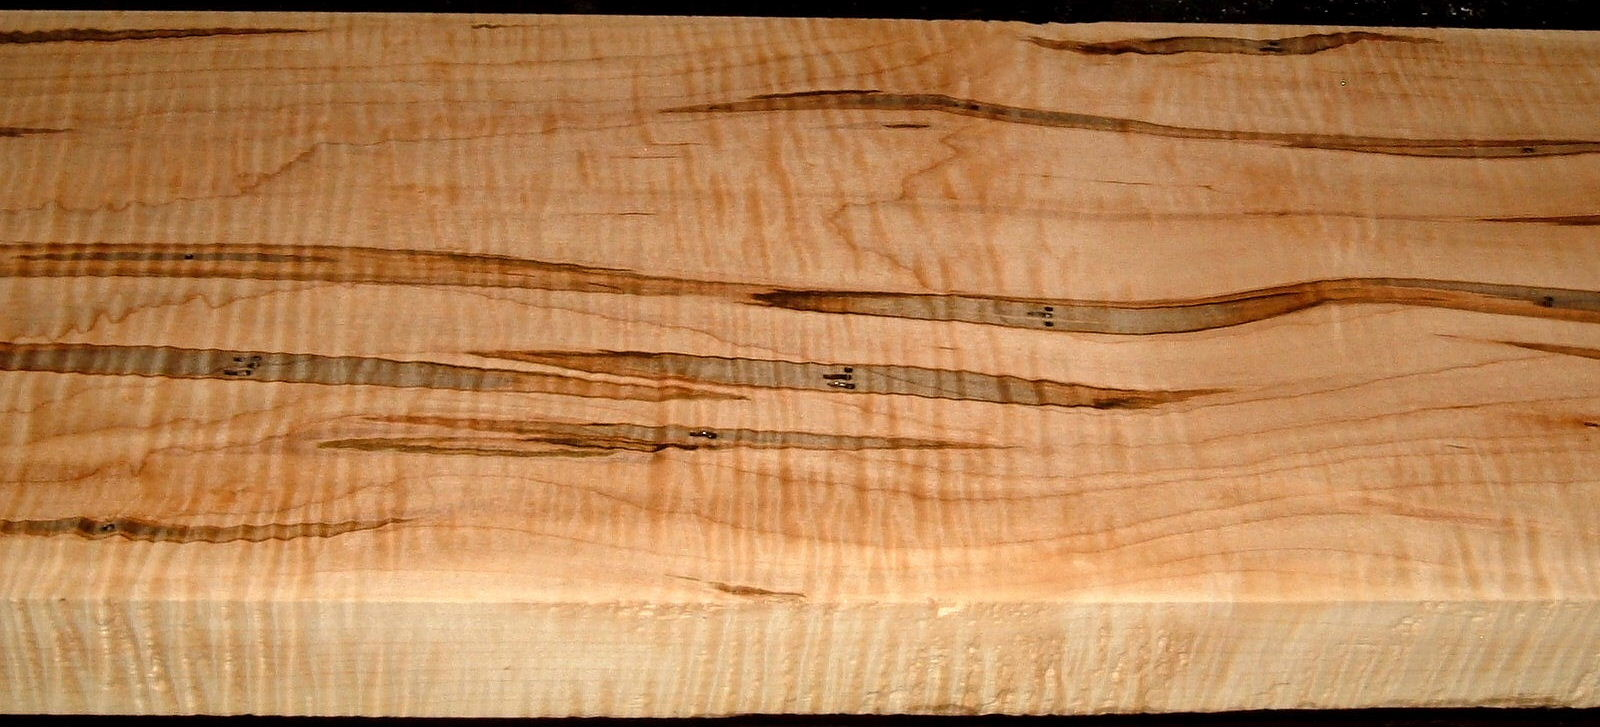 AM2002-44L, 1-5/8x9-1/2x53, Curly Tiger Ambrosia Wormy Maple